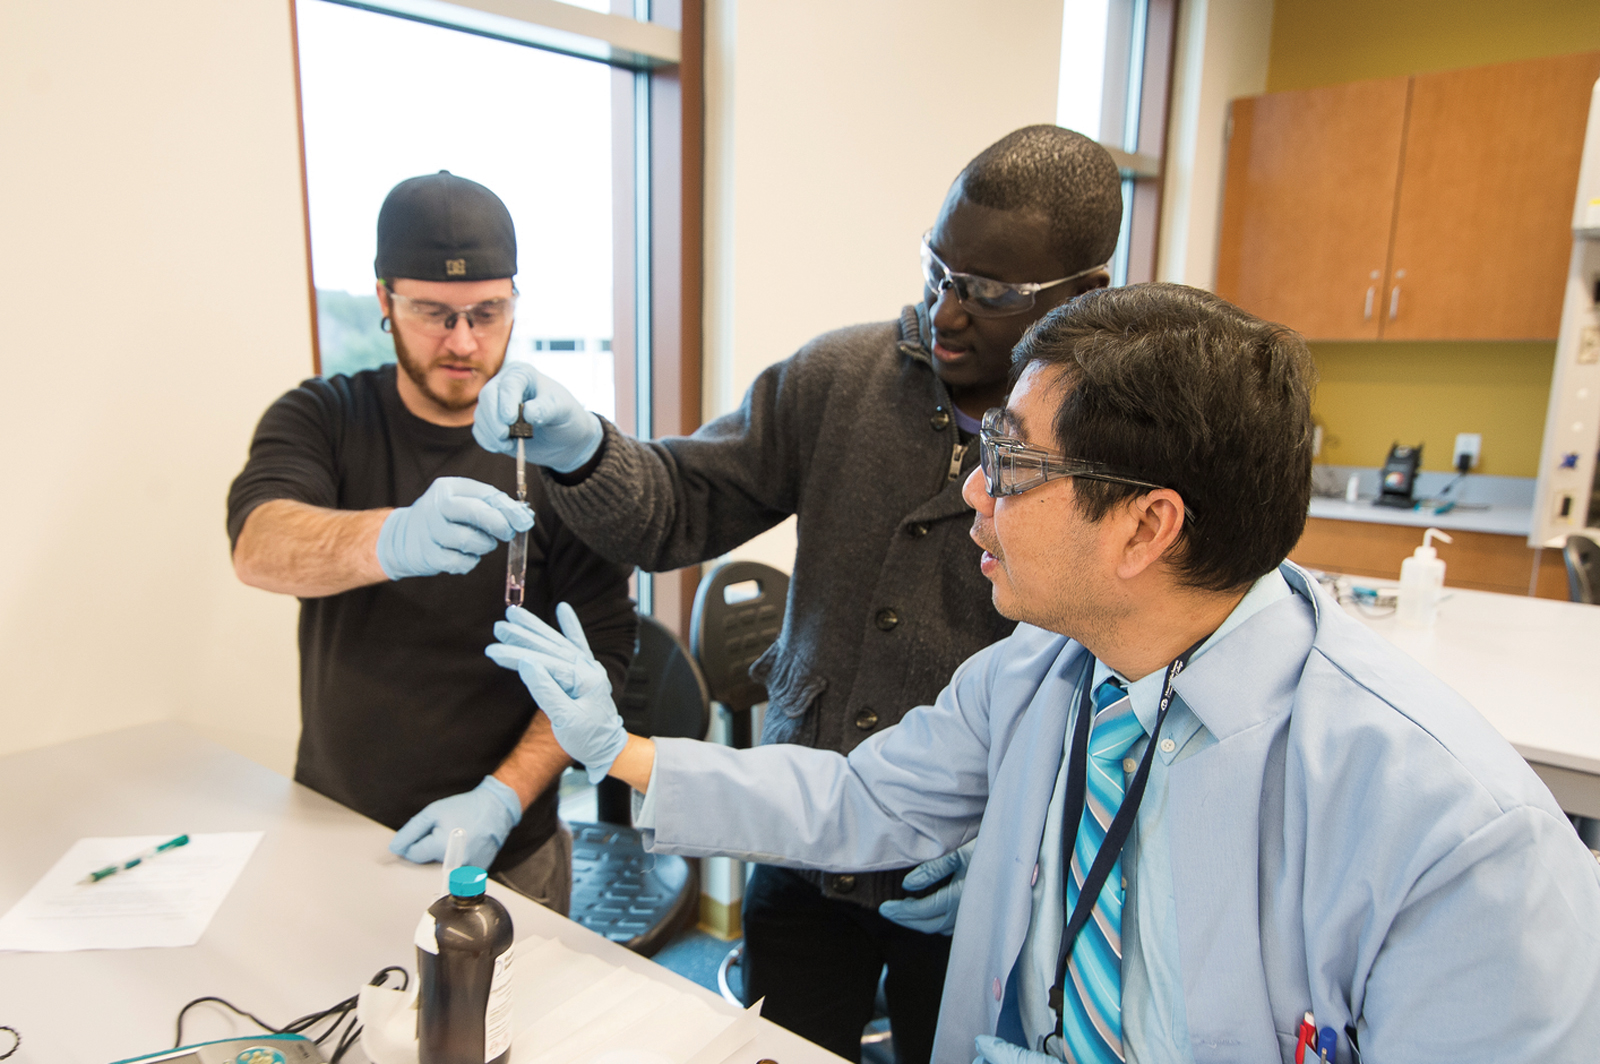 A professor instructs two students in a college science lab.